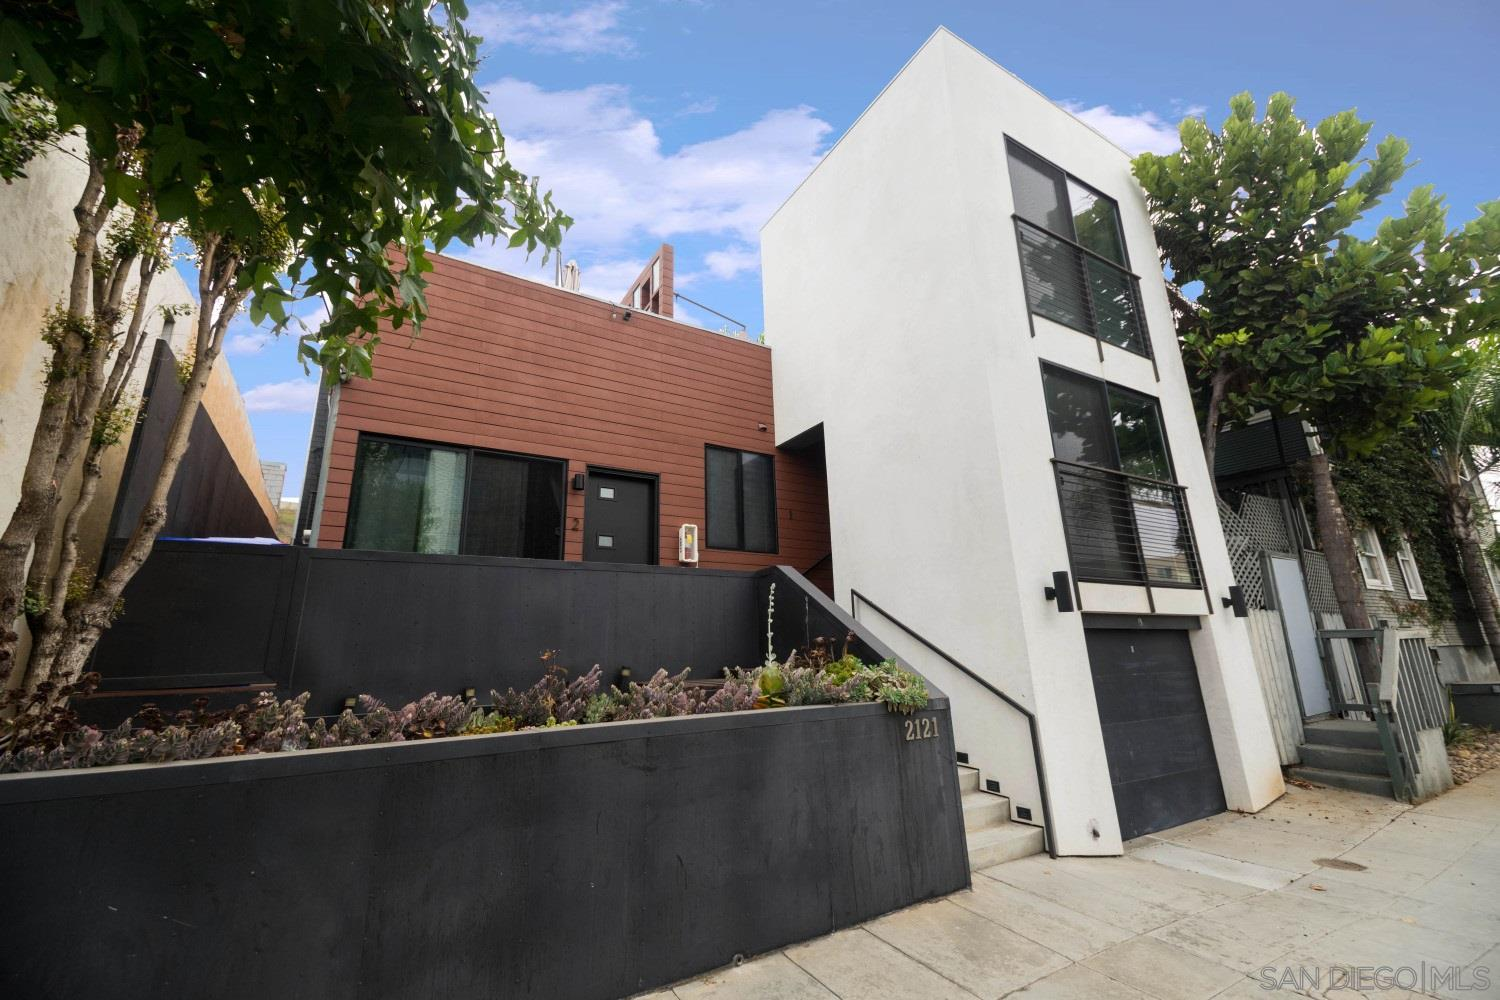 FEATURED LISTING: 2121 Columbia St San Diego